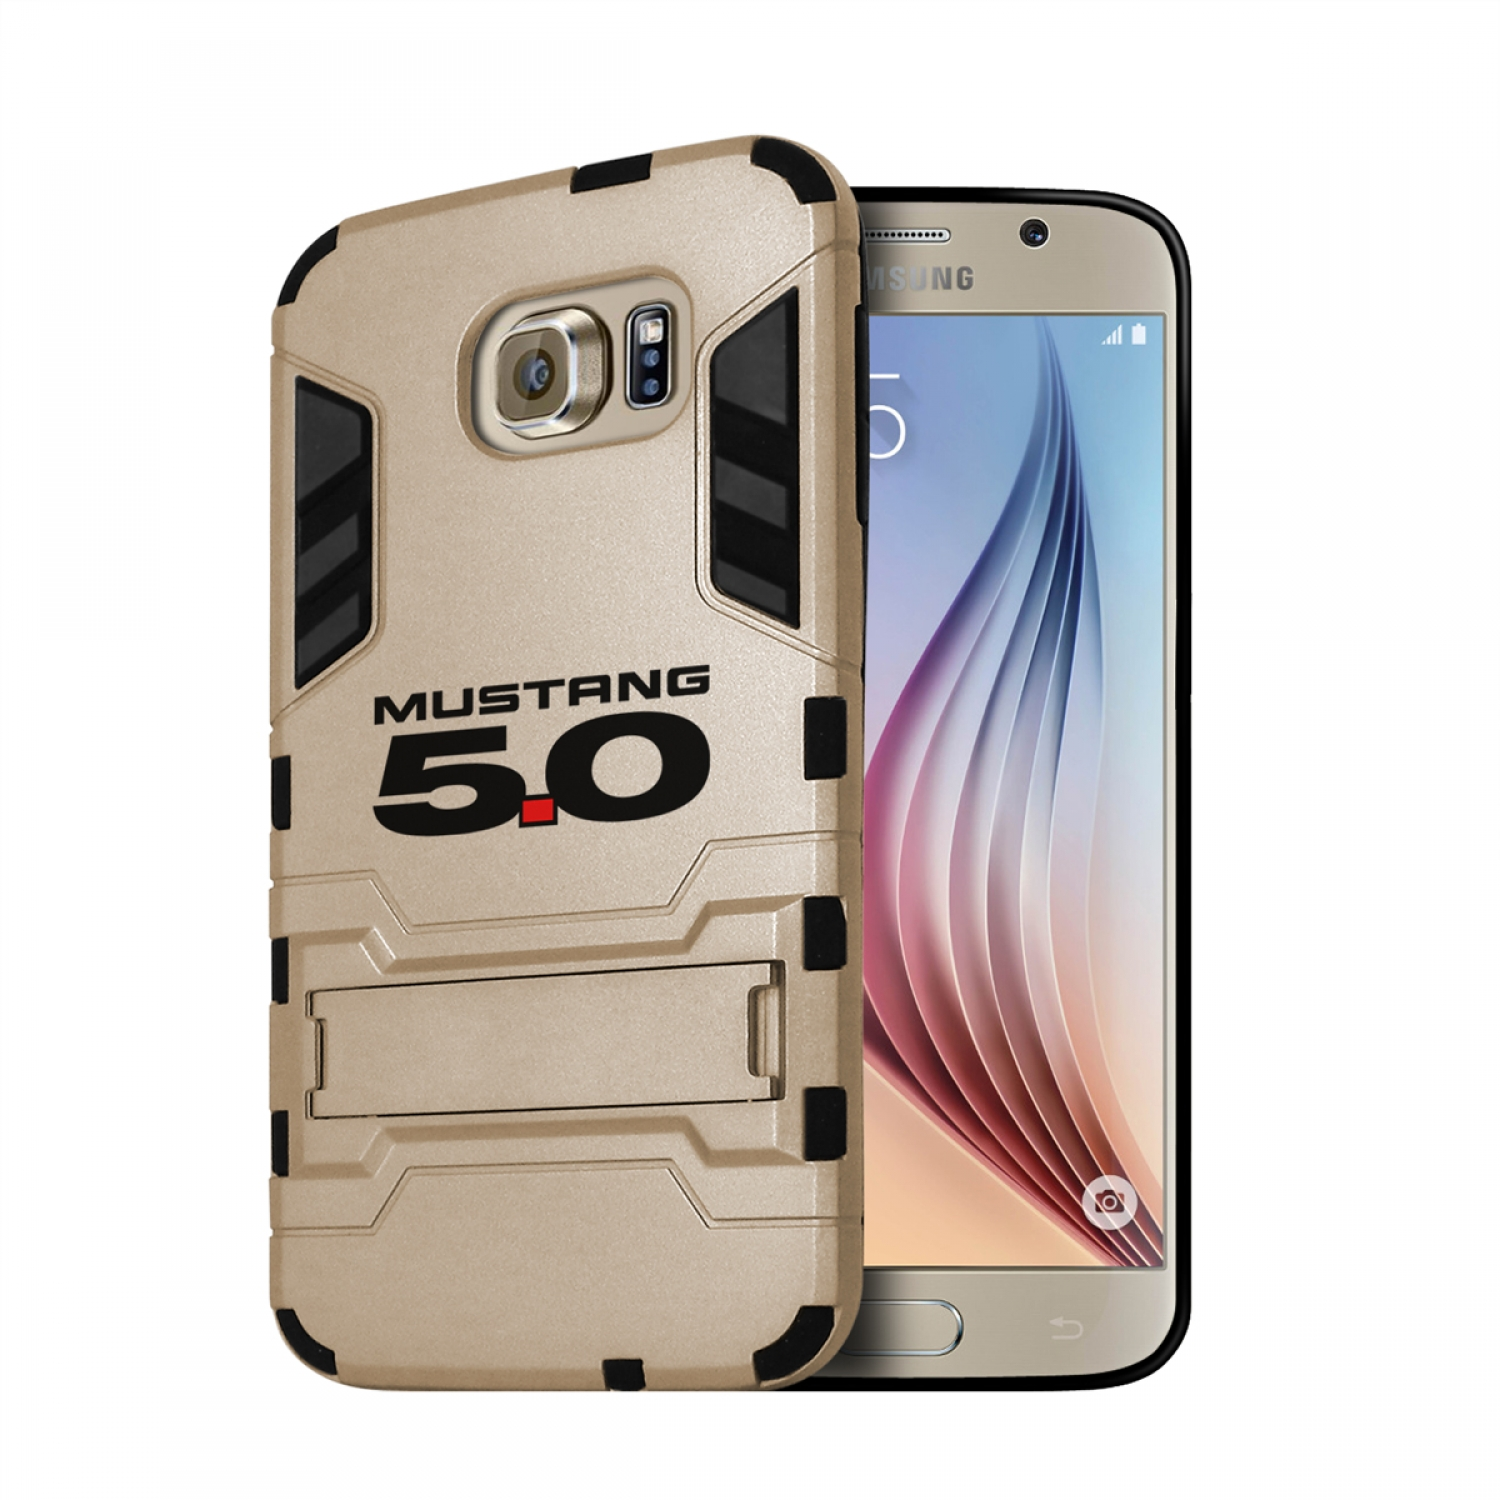 Ford Mustang 5.0 Samsung Galaxy S6 Shockproof TPU ABS Hybrid Golden Phone Case